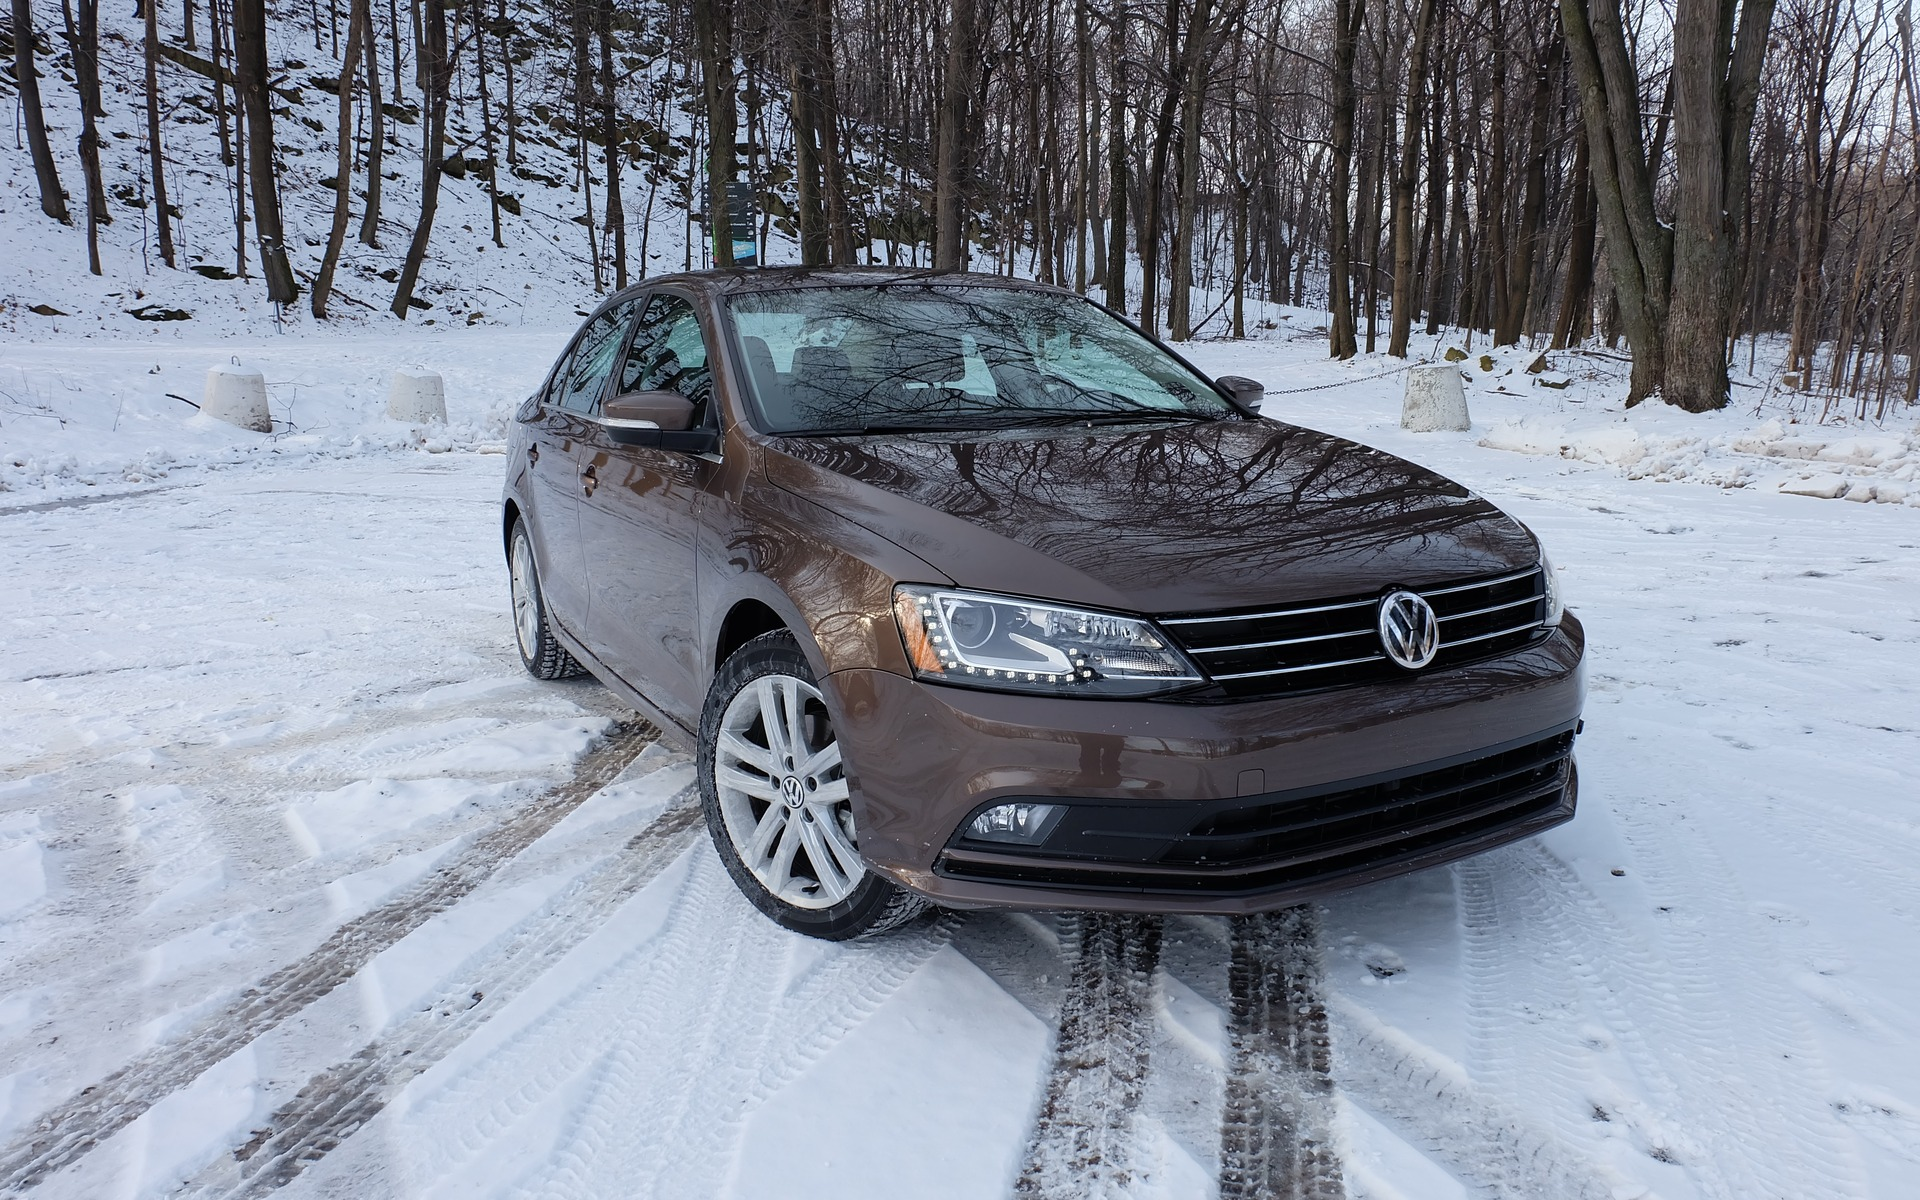 carfinder auctions en cert baltimore online copart right salvage view auto sale md tdi of lot on damage volkswagen jetta blue in